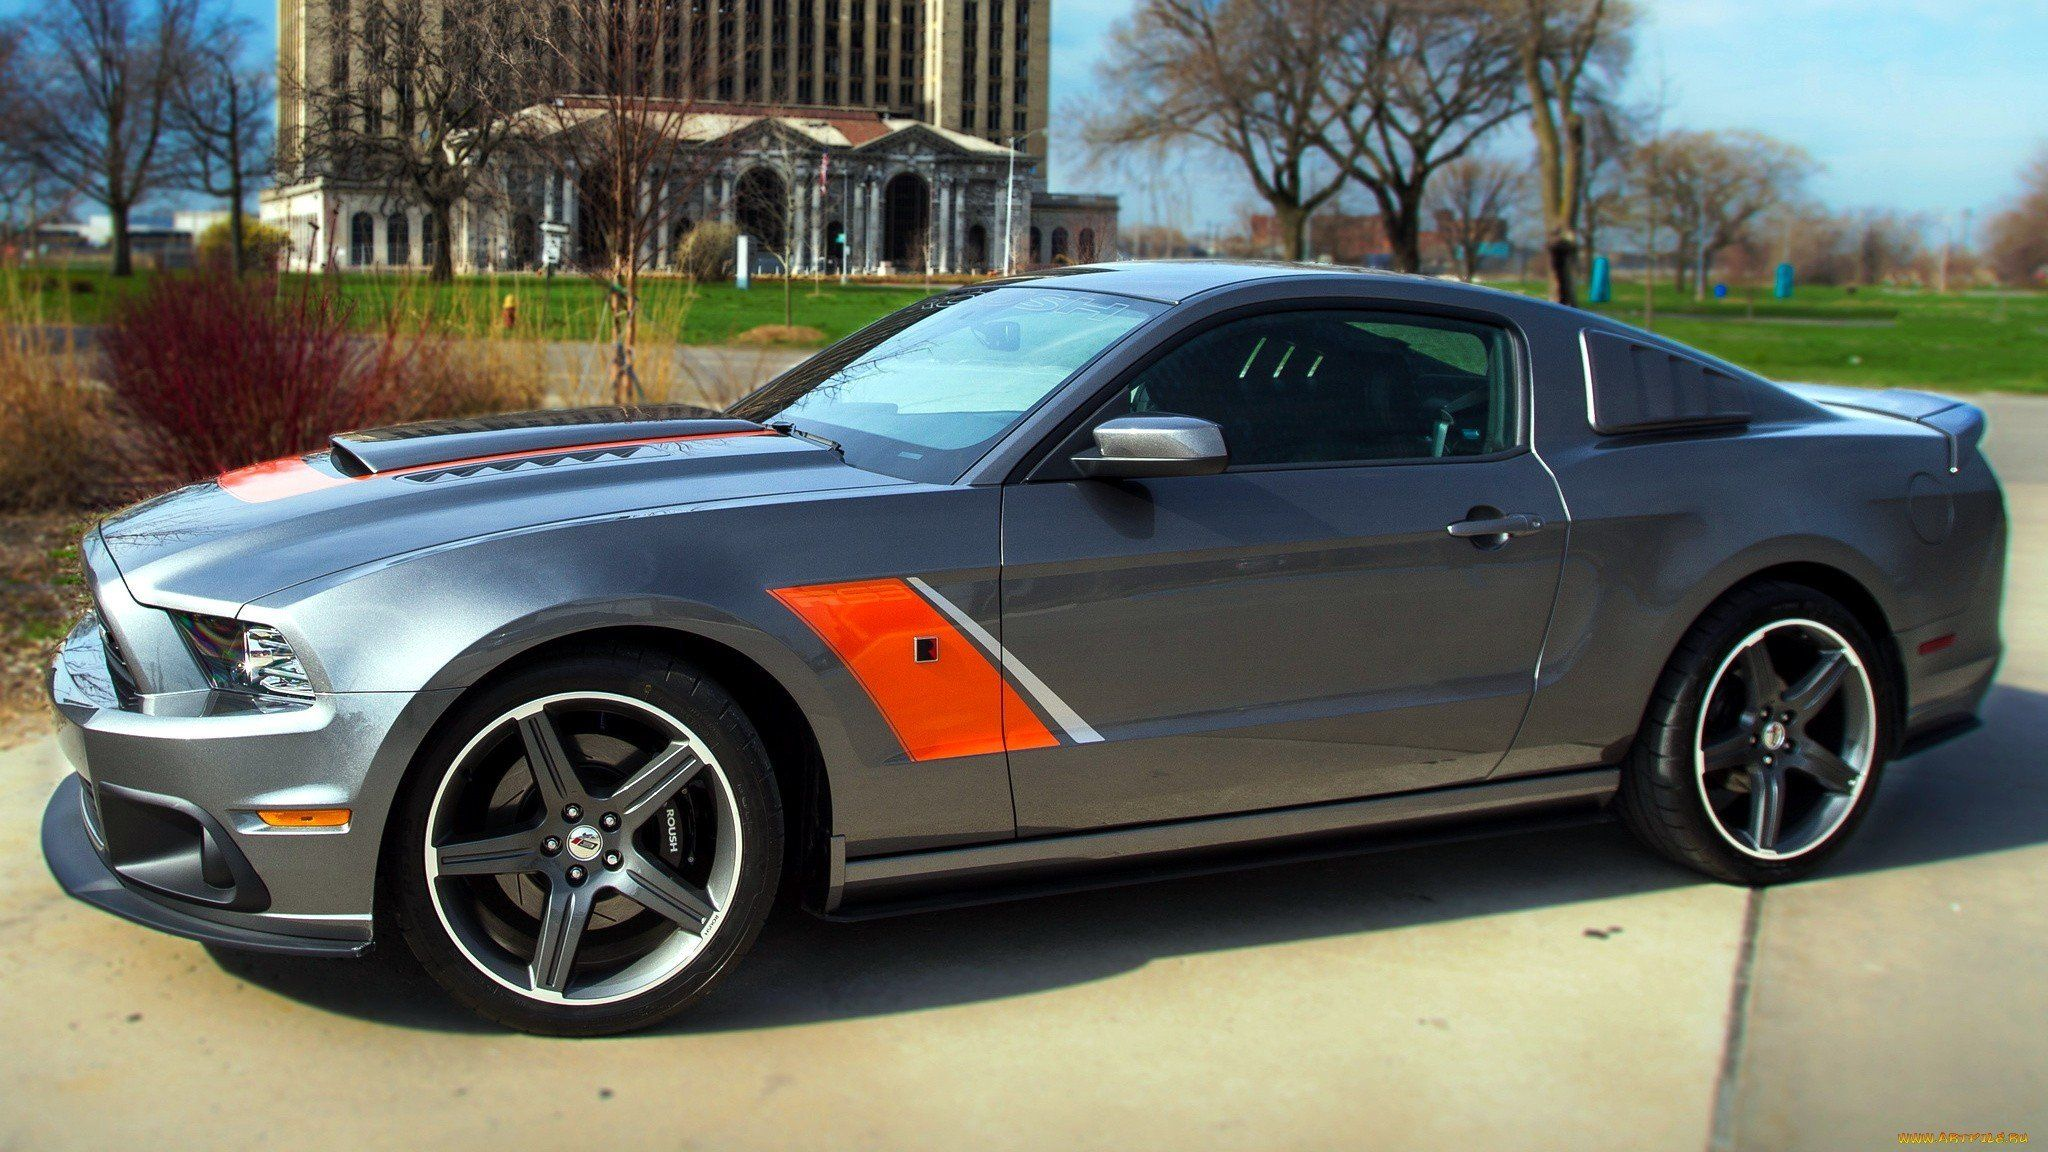 775c0df5e2d6c3e350680bfcd8b9bd22 Cool Review About 2008 ford Mustang Gt Horsepower